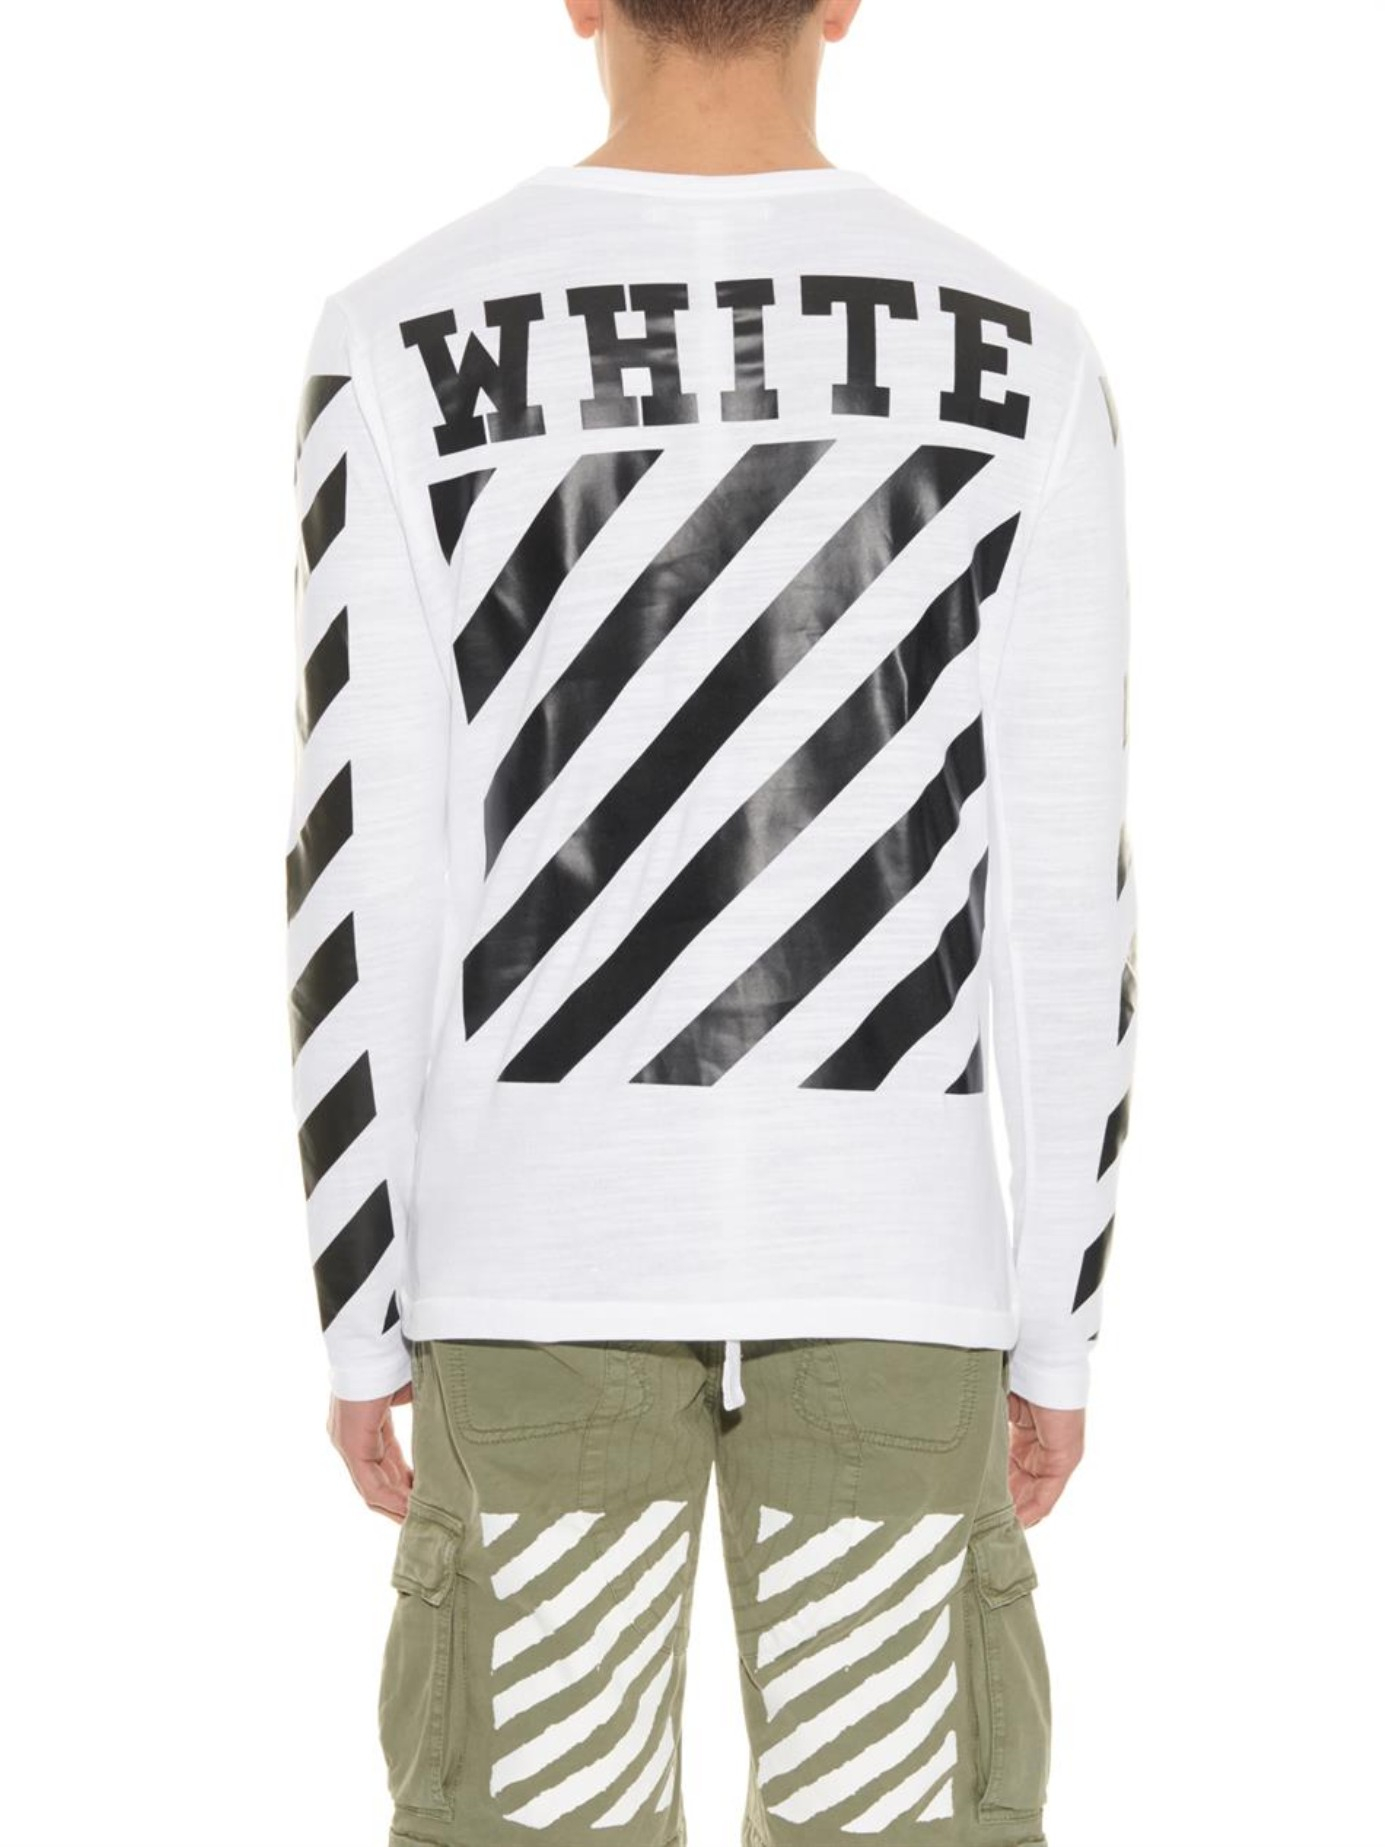 346392a67 Off-White c/o Virgil Abloh Striped Long-Sleeved T-Shirt in White for ...